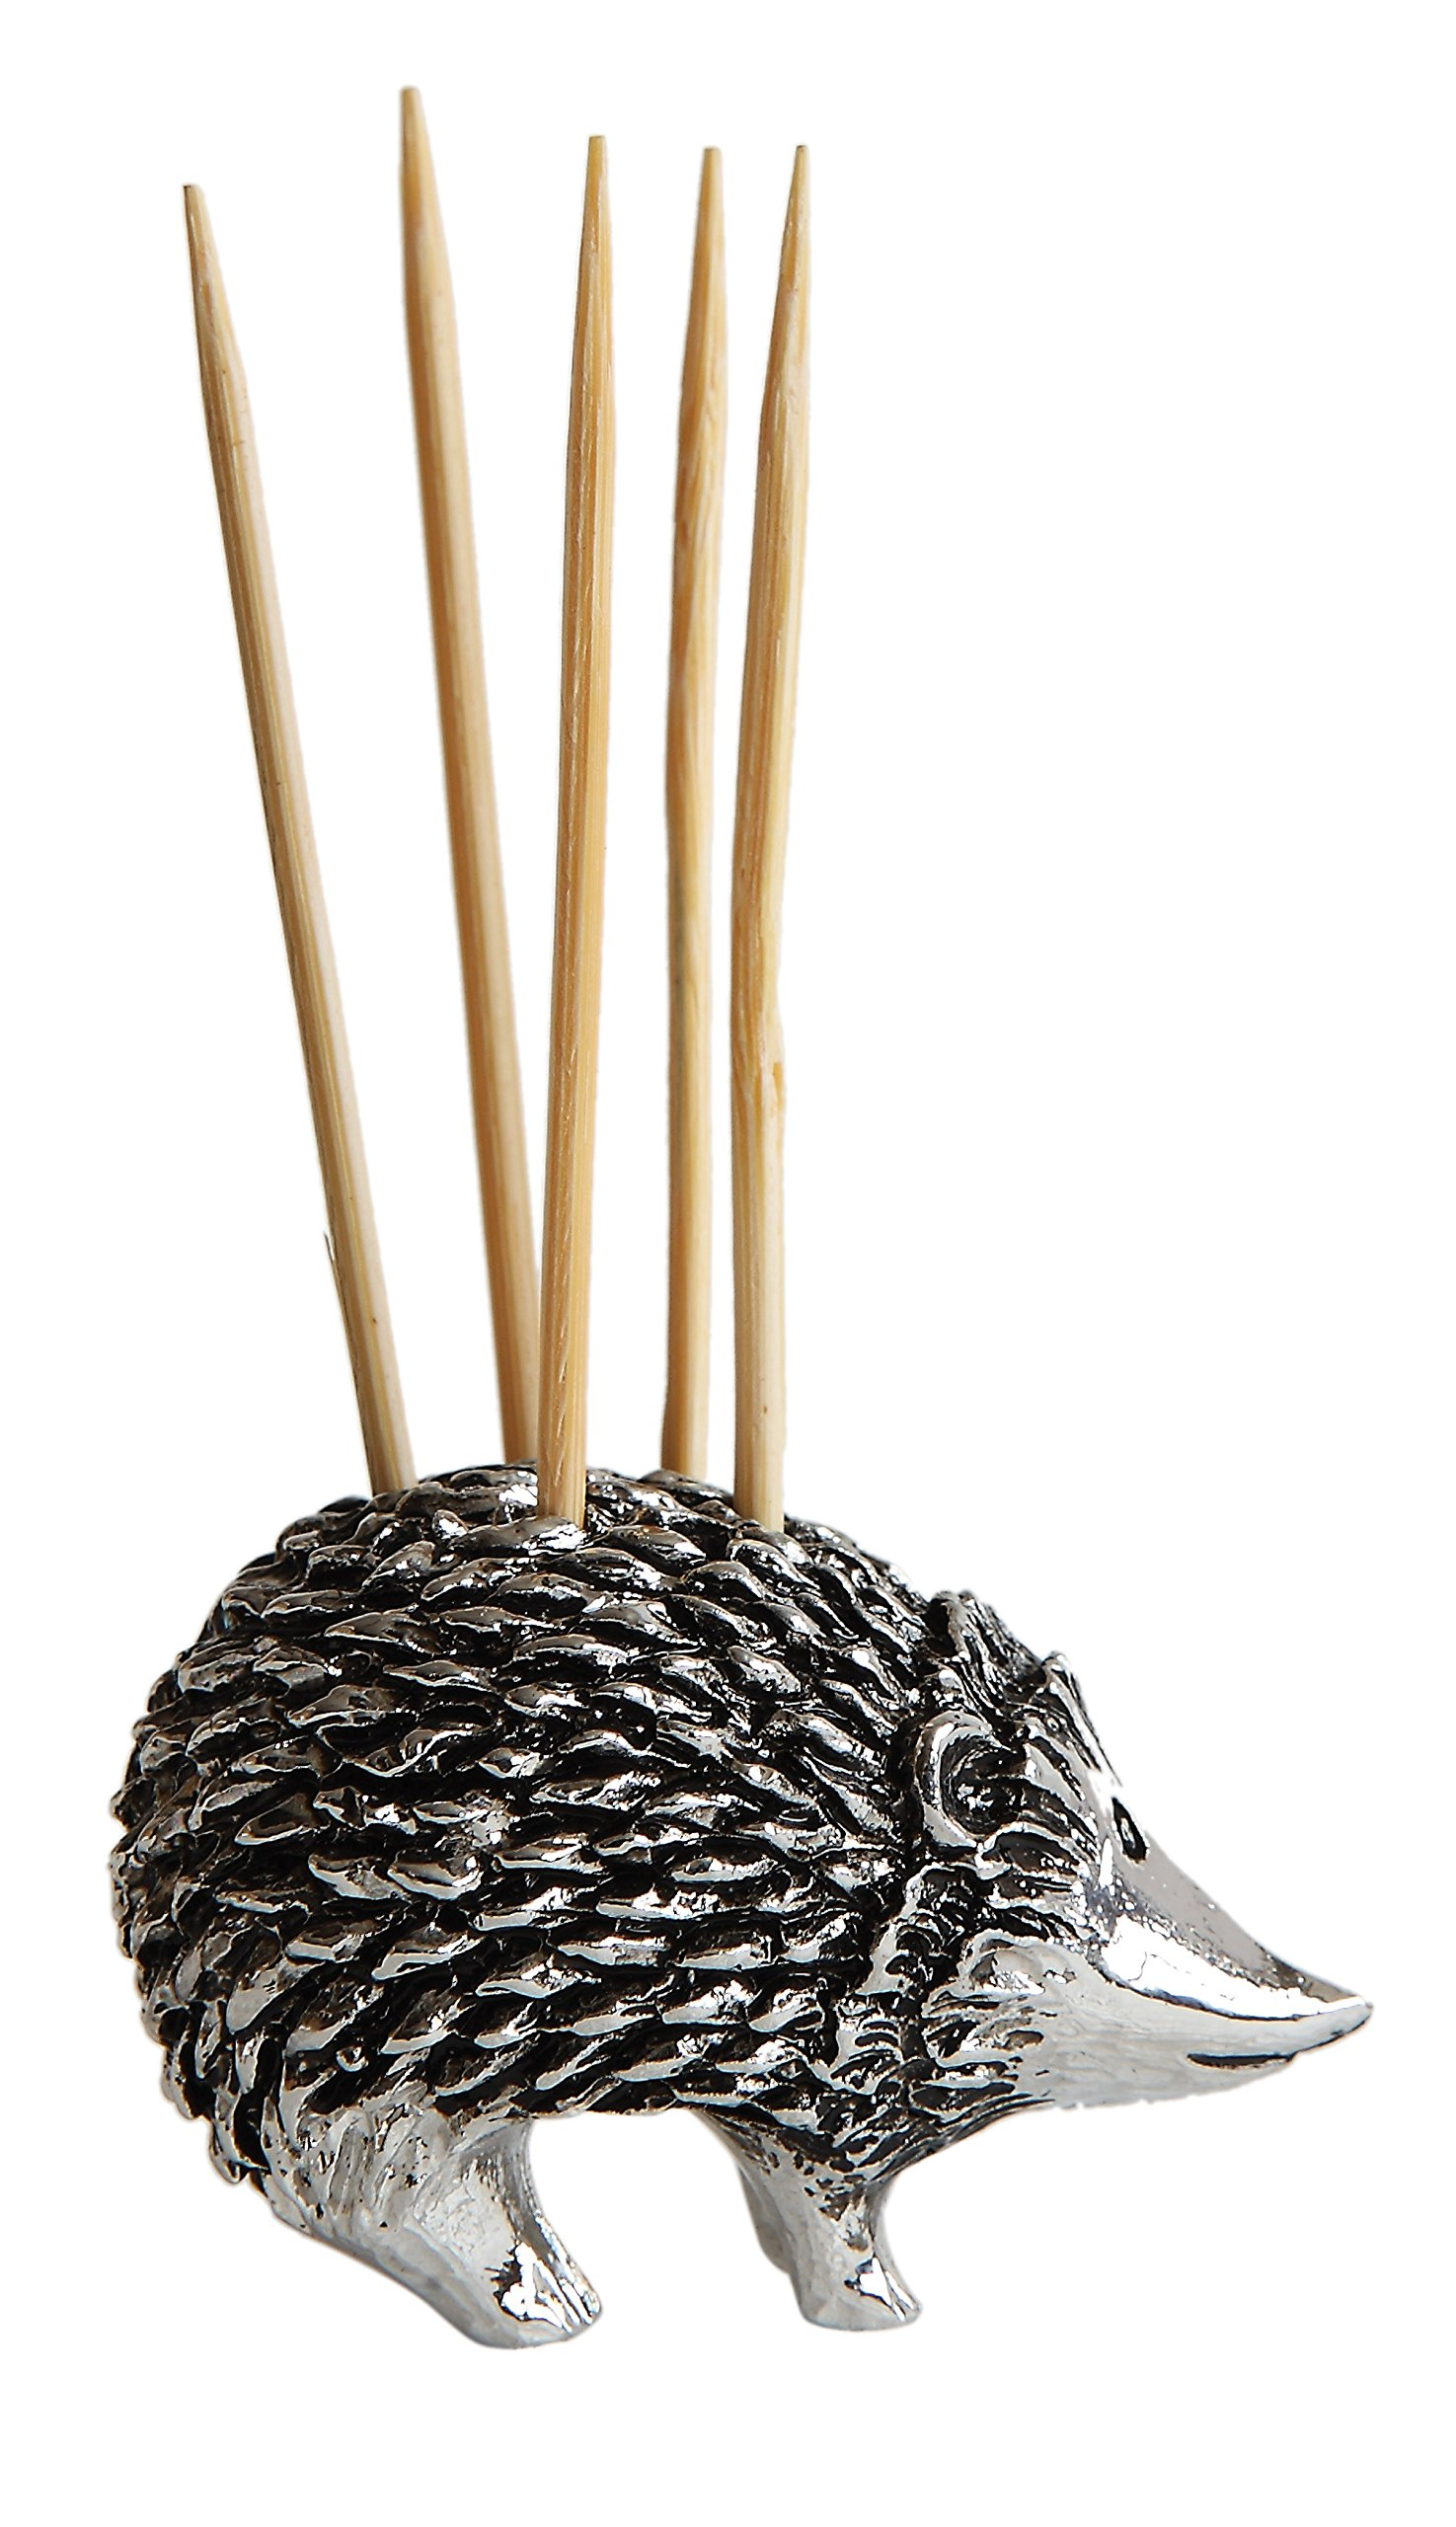 Creative Co-Op Hedgehog Toothpick Holder with Toothpicks, Silver by Creative Co-op